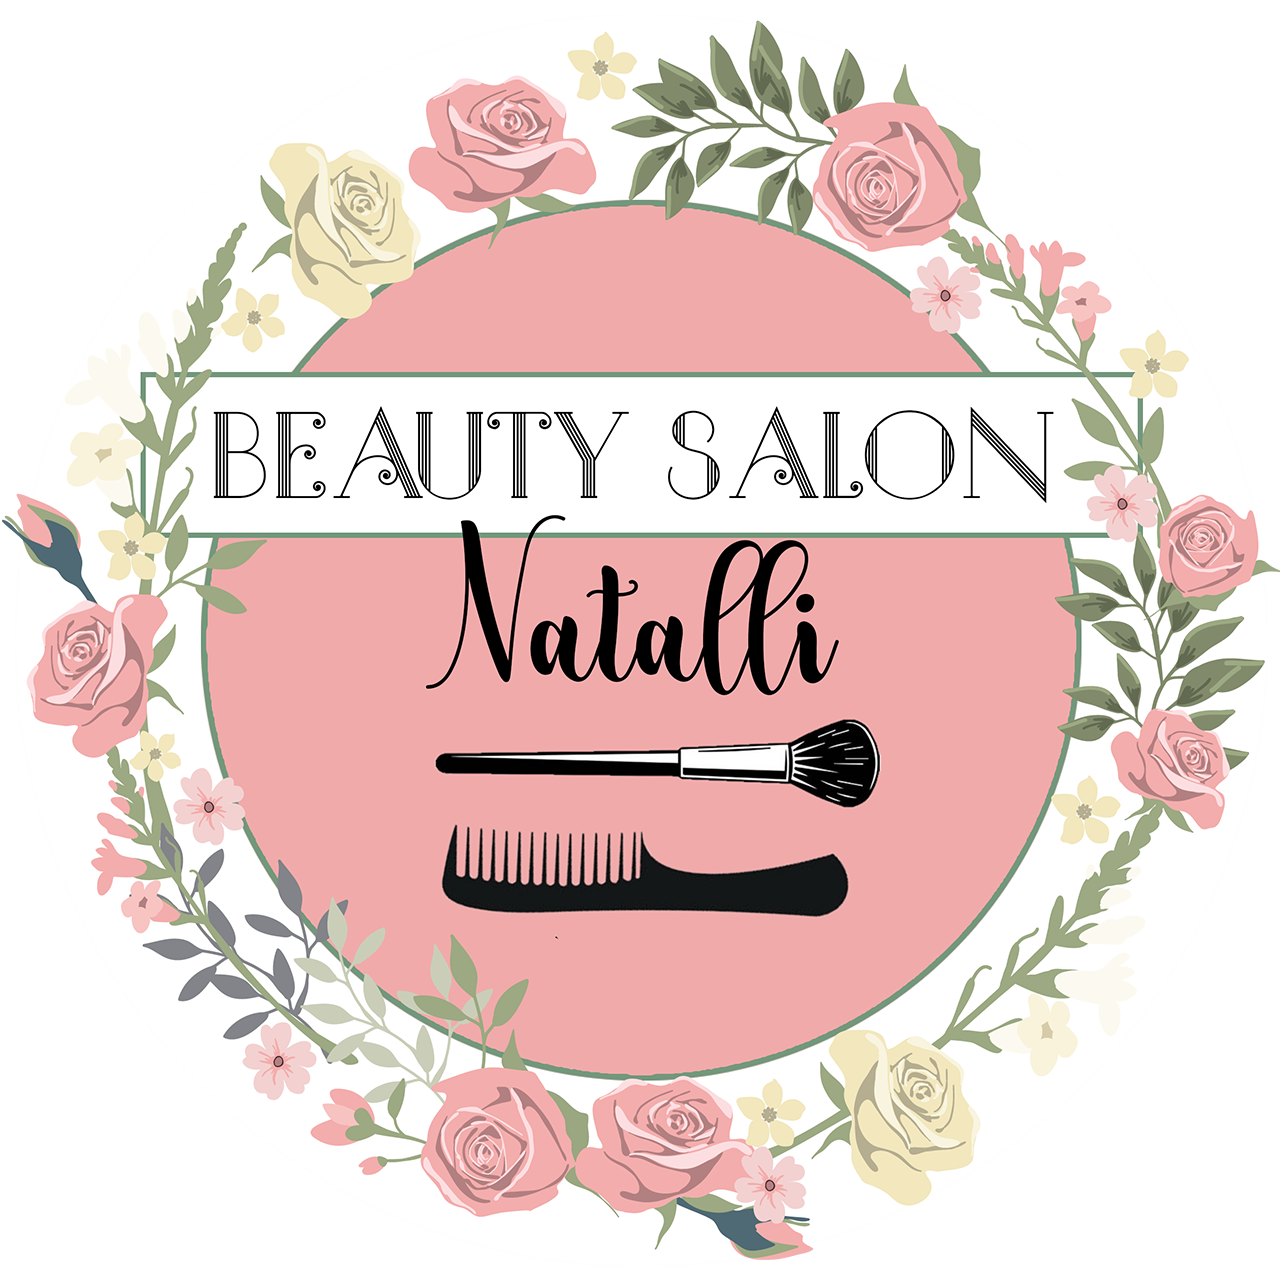 Beauty salon Natalli